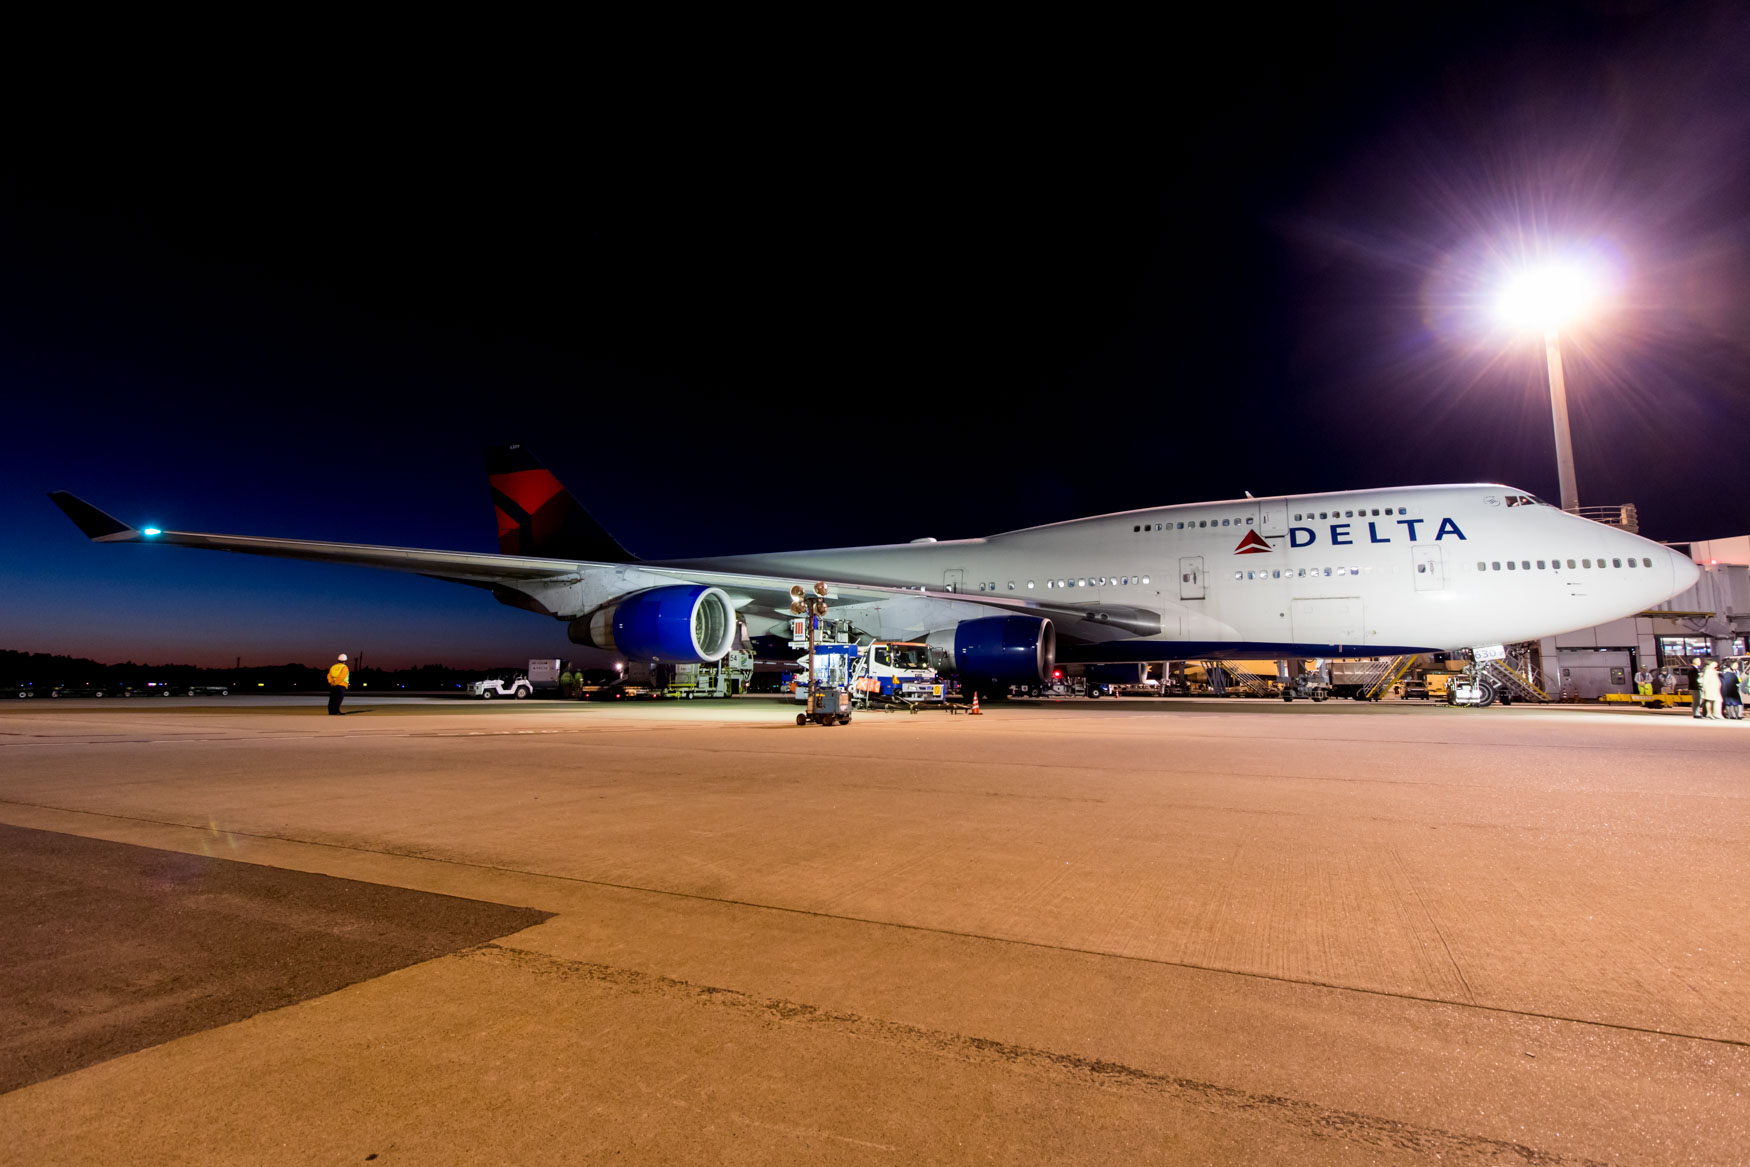 Delta Air Lines 747-400 at Gate Last Time in Tokyo